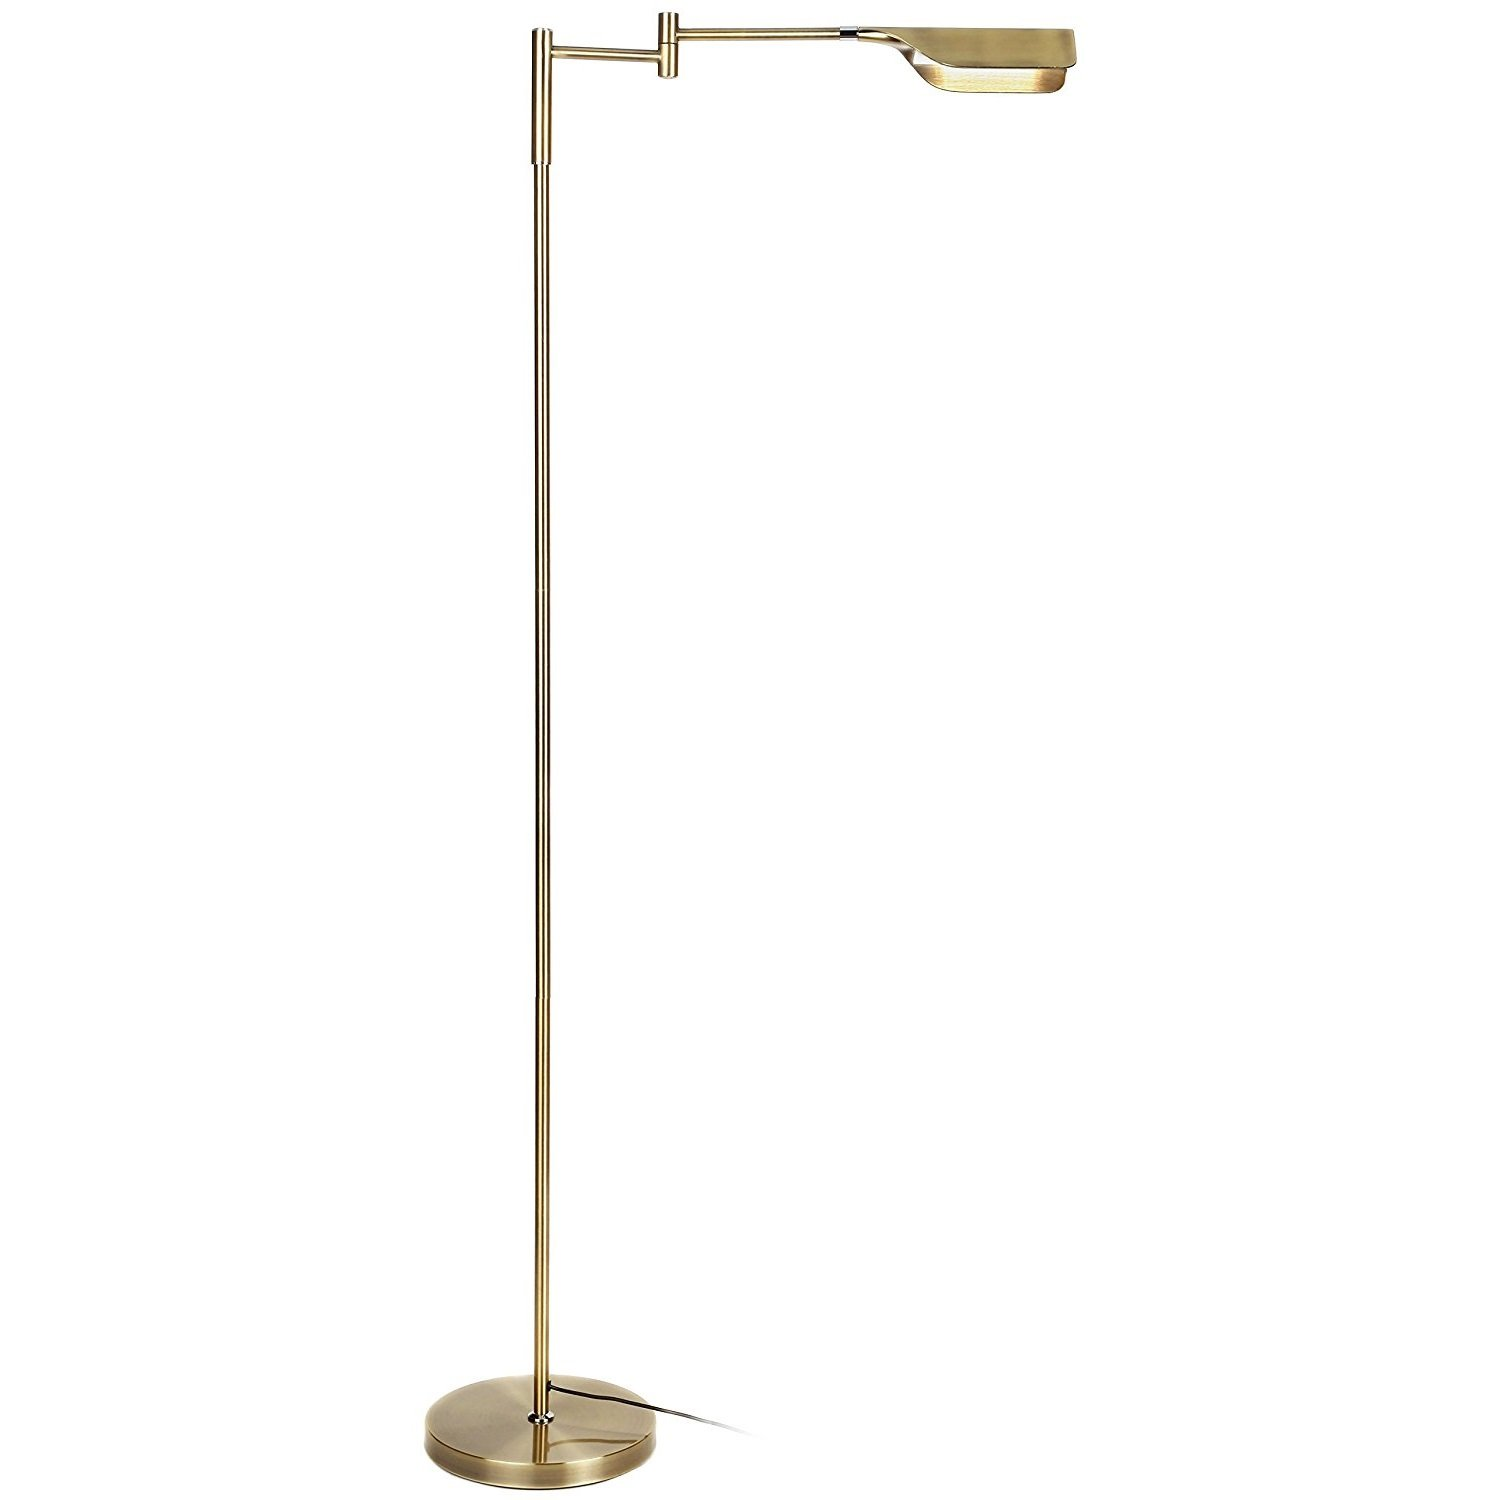 Brightech Leaf - Bright LED Floor Lamp for Reading, Crafts & Precise Tasks - Standing Modern Pharmacy Light for Living Room, Sewing - Great by Office Desks & Tables - Antique Brass 211179AB